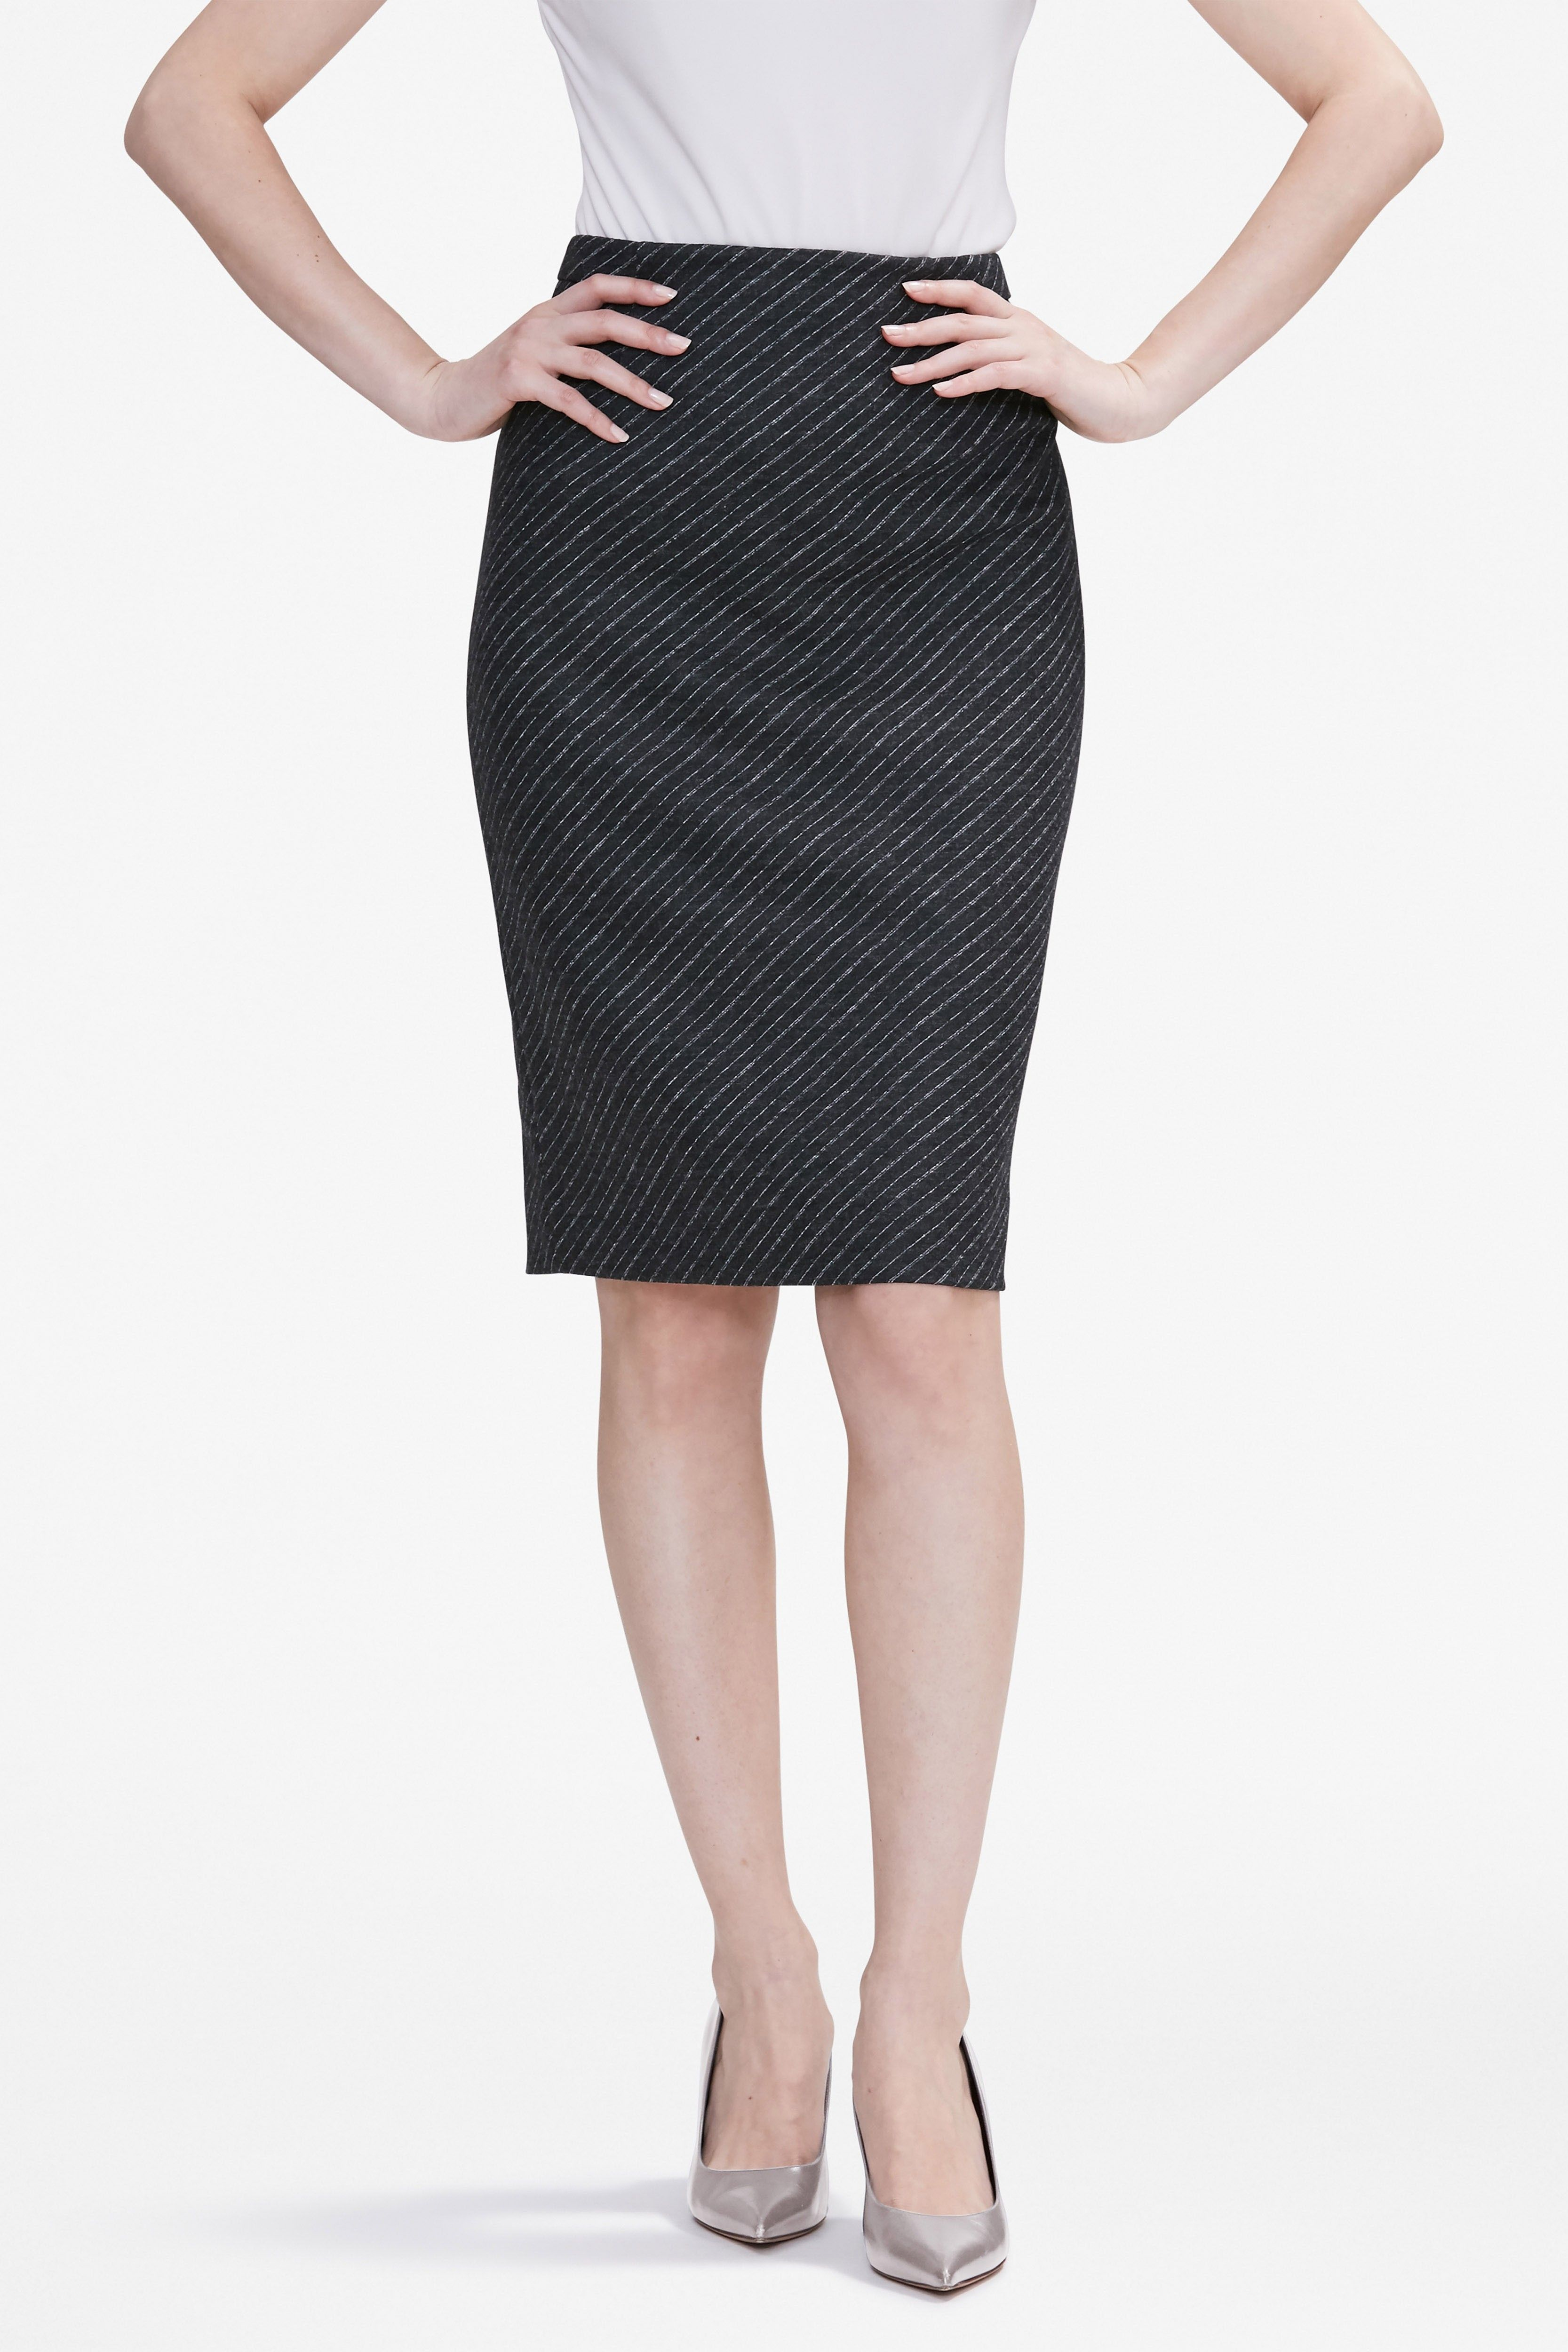 9856008f183d5 The Cobble Hill 3.0 Skirt—Etch Stripe